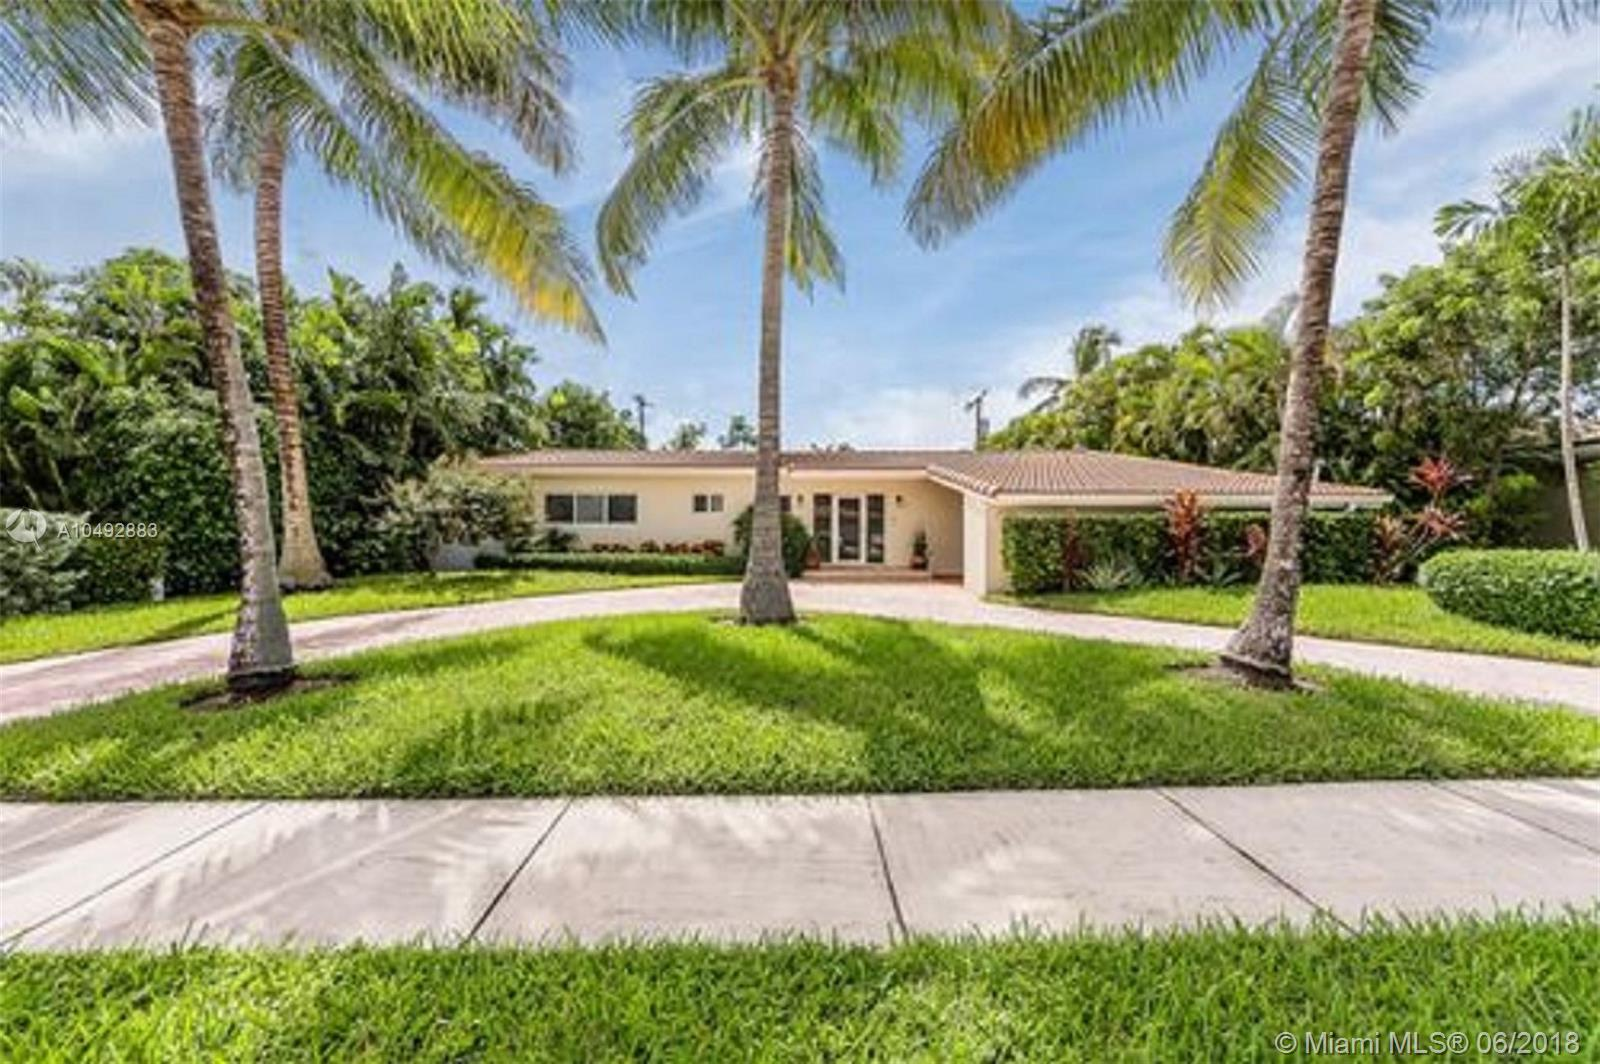 North Miami Beach - 2280 Keystone Blvd, North Miami, FL 33181